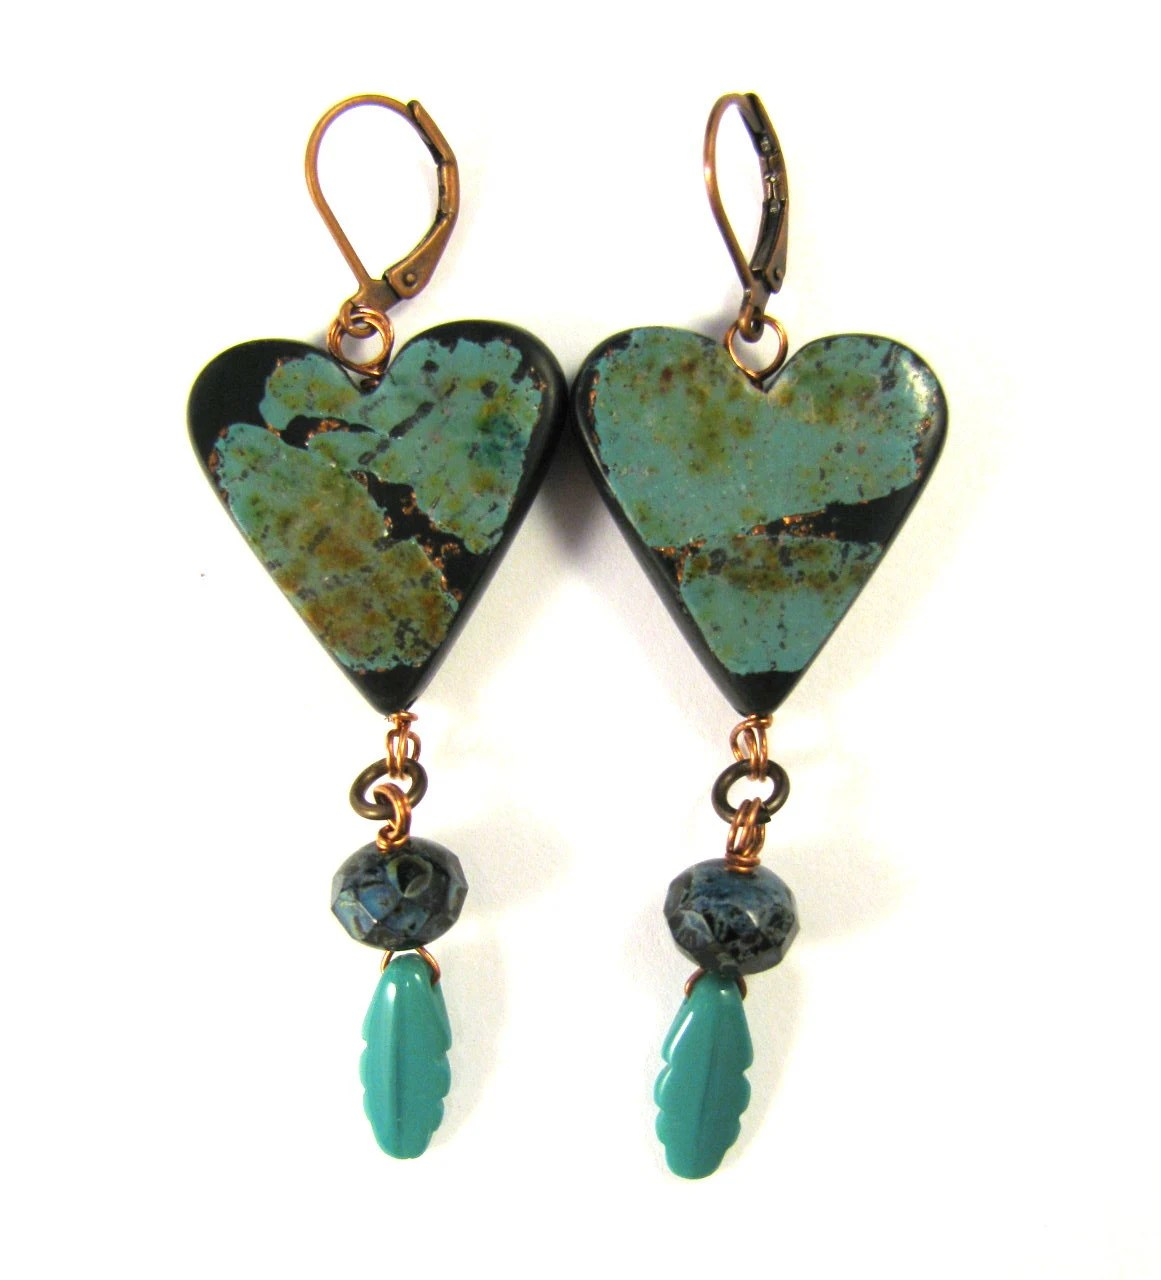 Fabulous Faux Collection - Fox Turquoise Heart Earrings with Turquoise Czech Glass Feather Charms - DivaDesignsInc